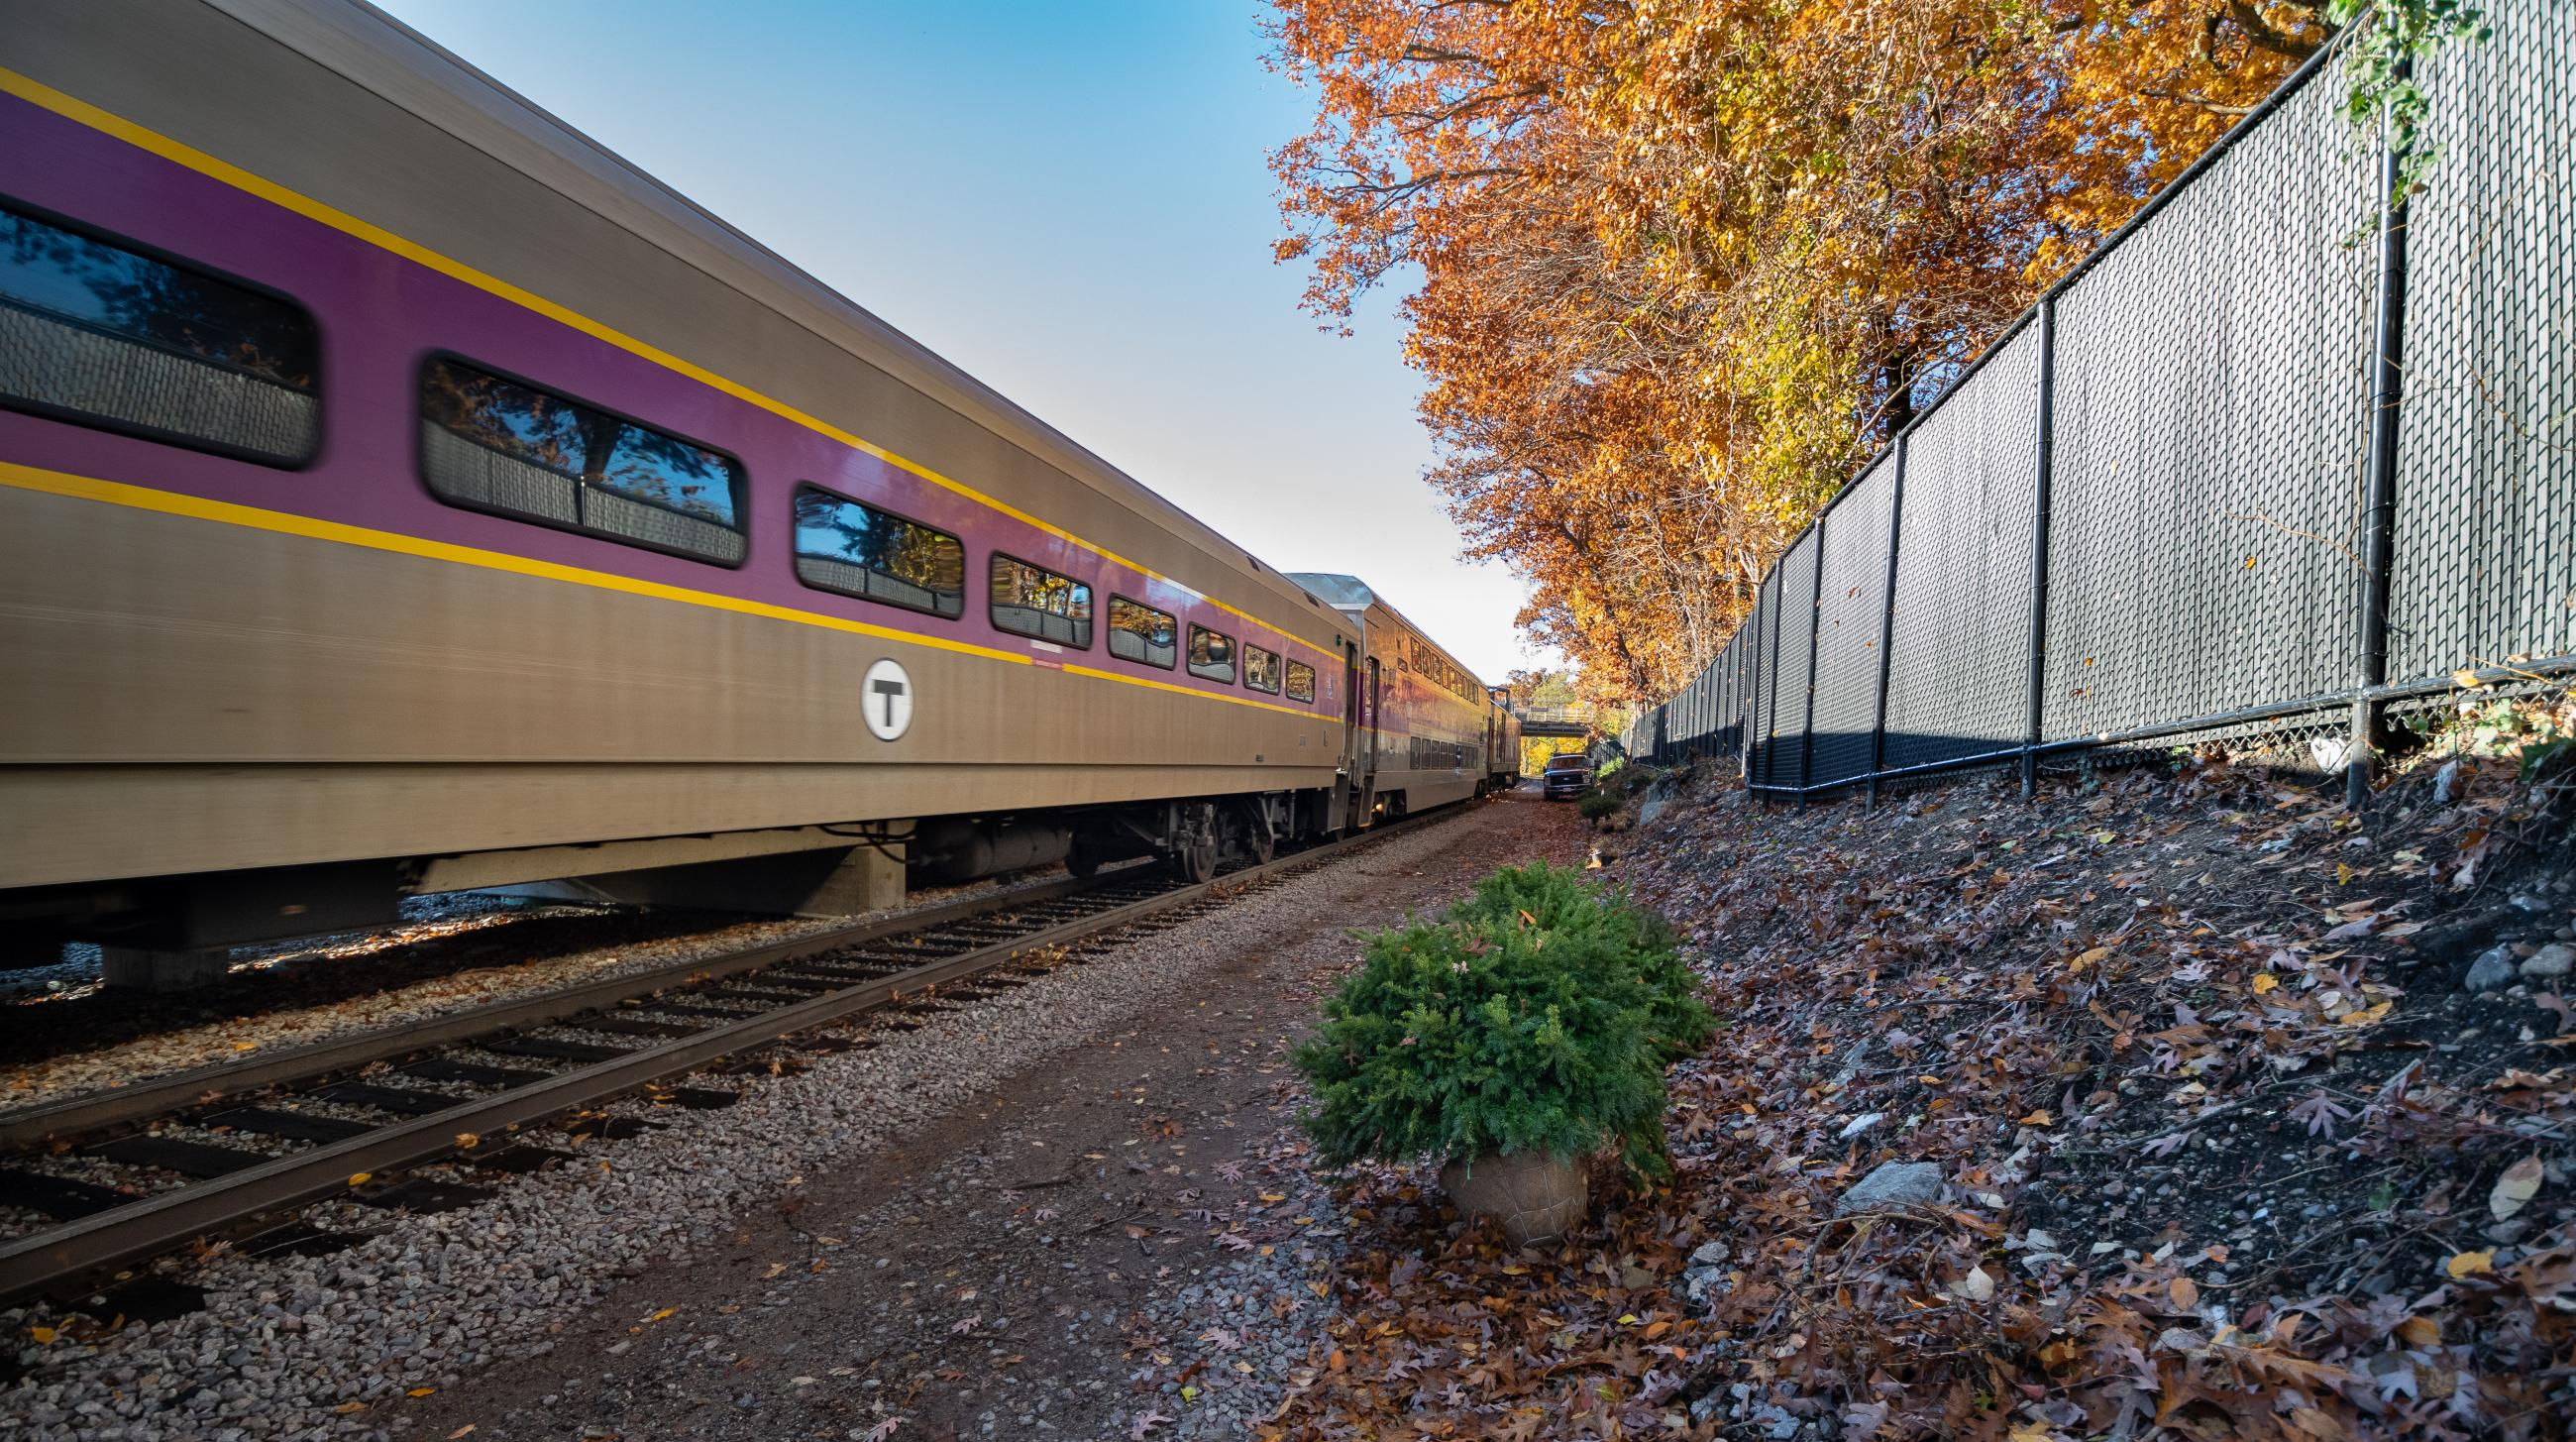 Commuter Rail Train Drives Through Blue Hill Avenue Station in Fall